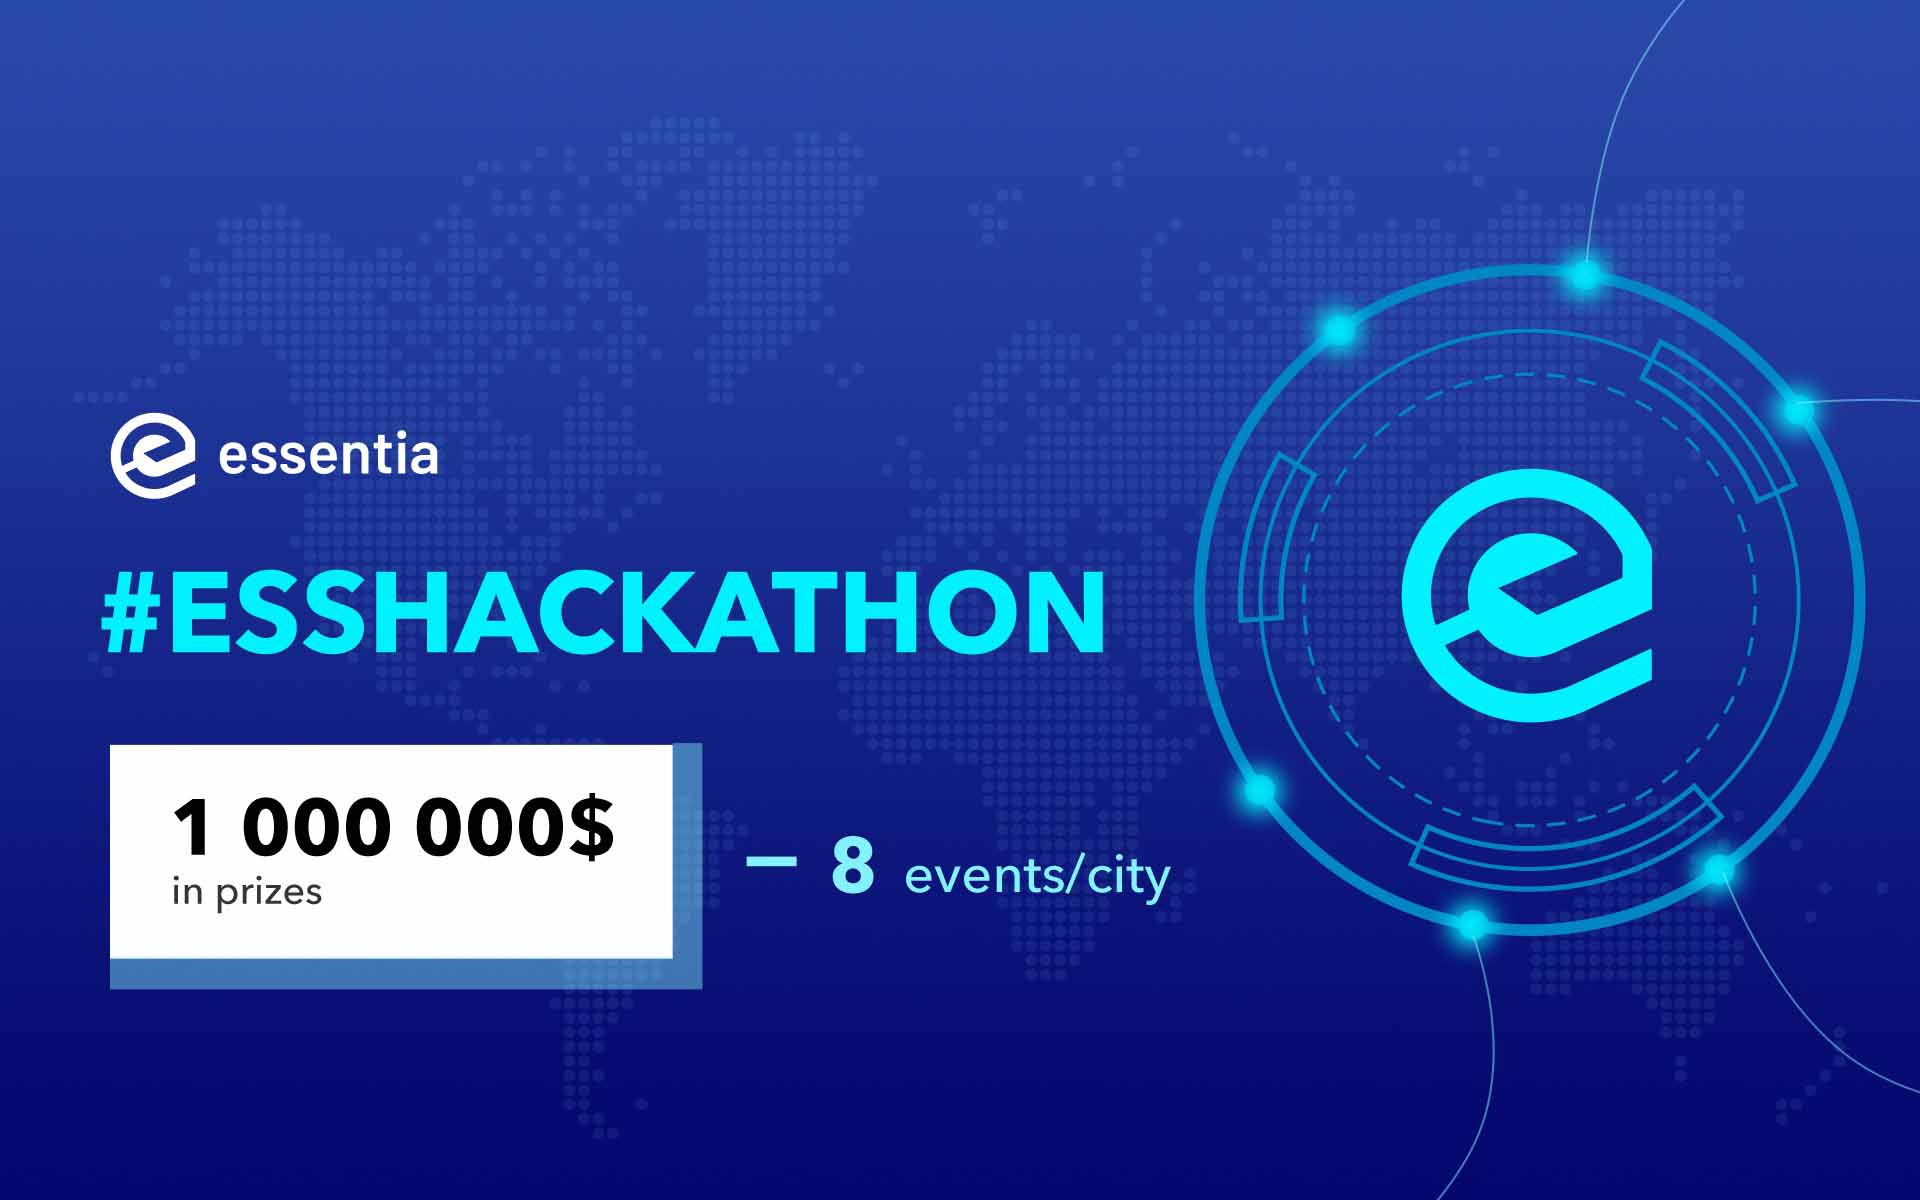 Essentia.One Sets Aside $1 Million for Global Blockchain Hackathon in 8 Cities